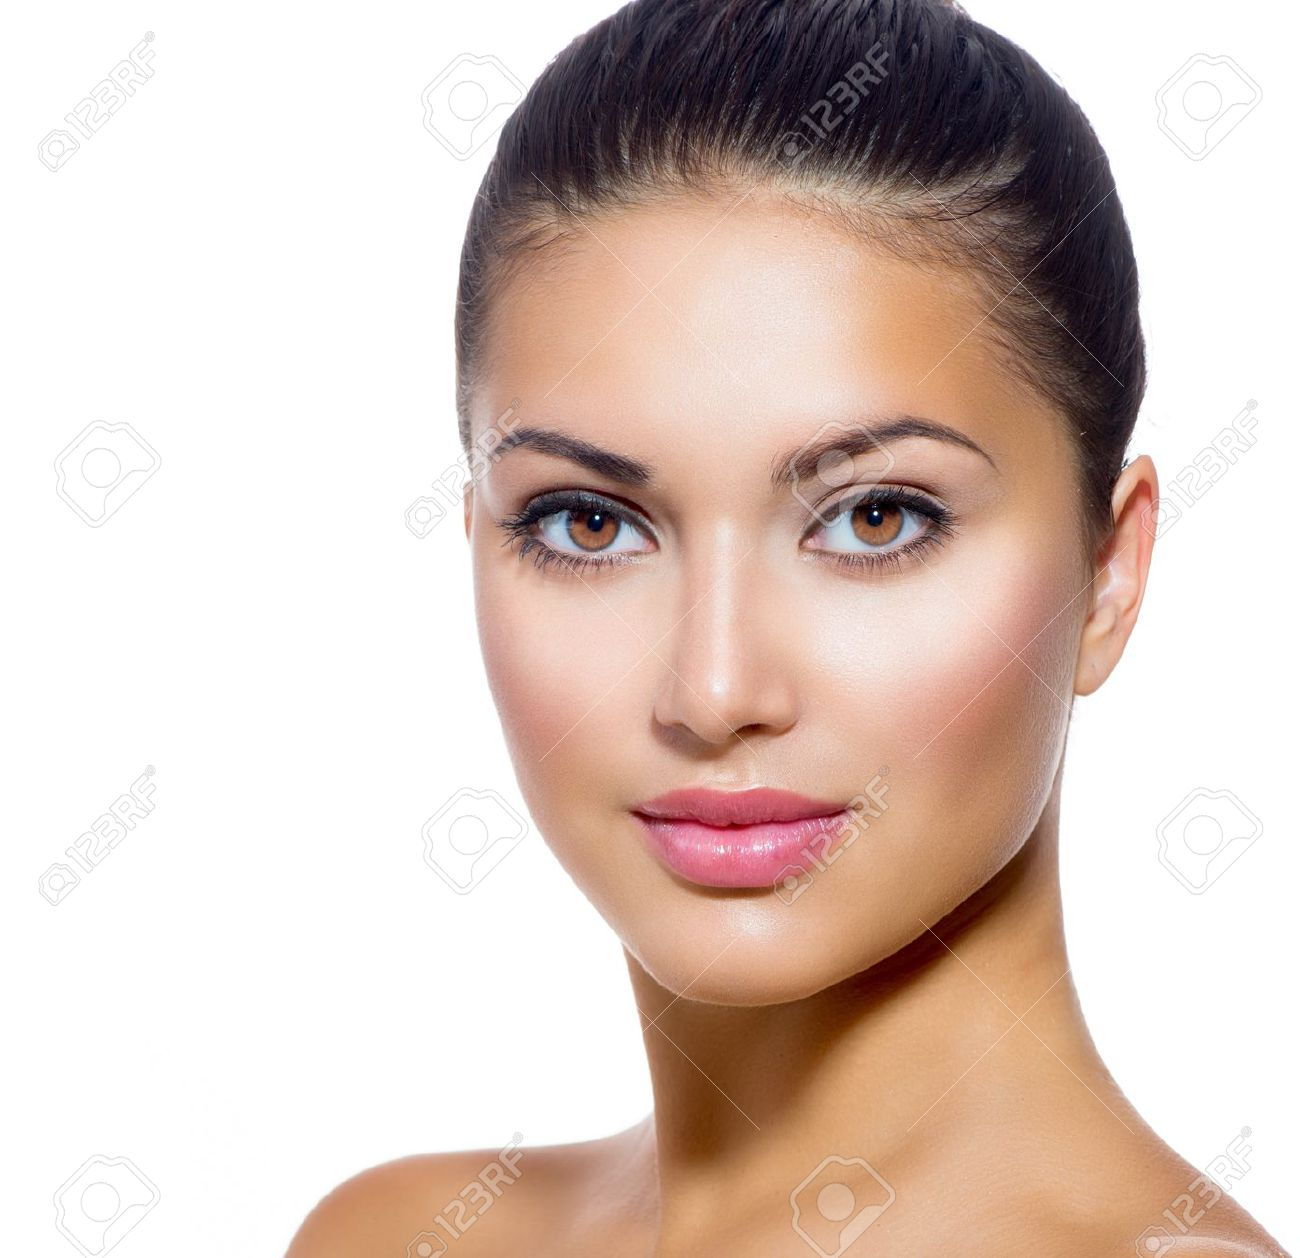 Beautiful Face of Young Woman with Clean Fresh Skin Stock Photo - 21564574